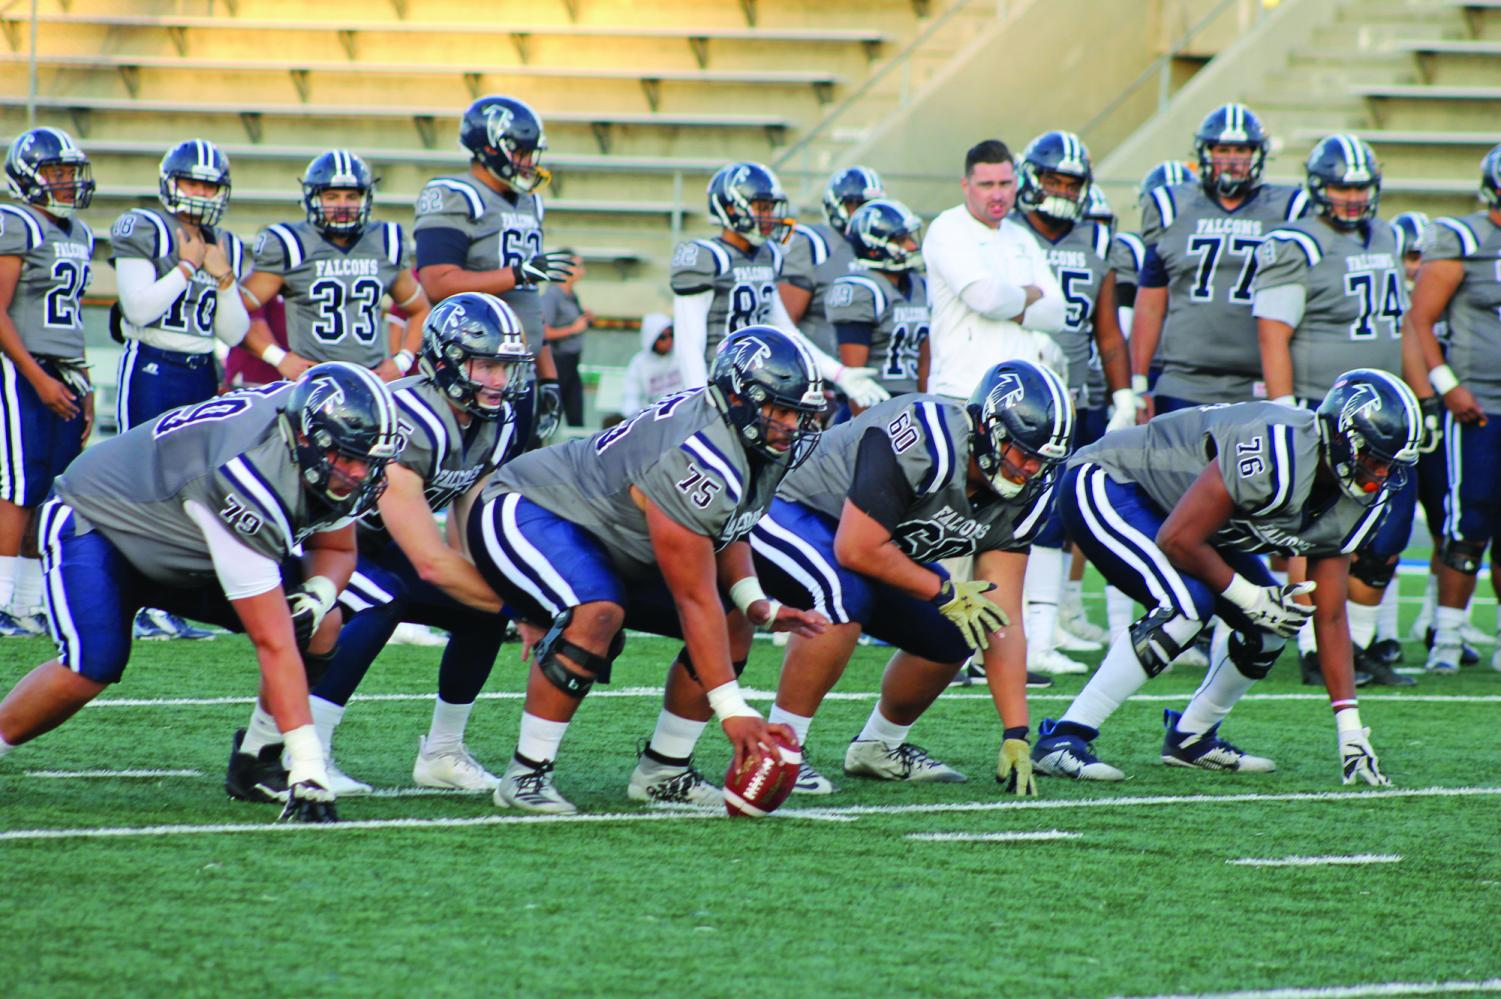 Falcons miss out on playoffs with loss to Mt. Sac Mounties